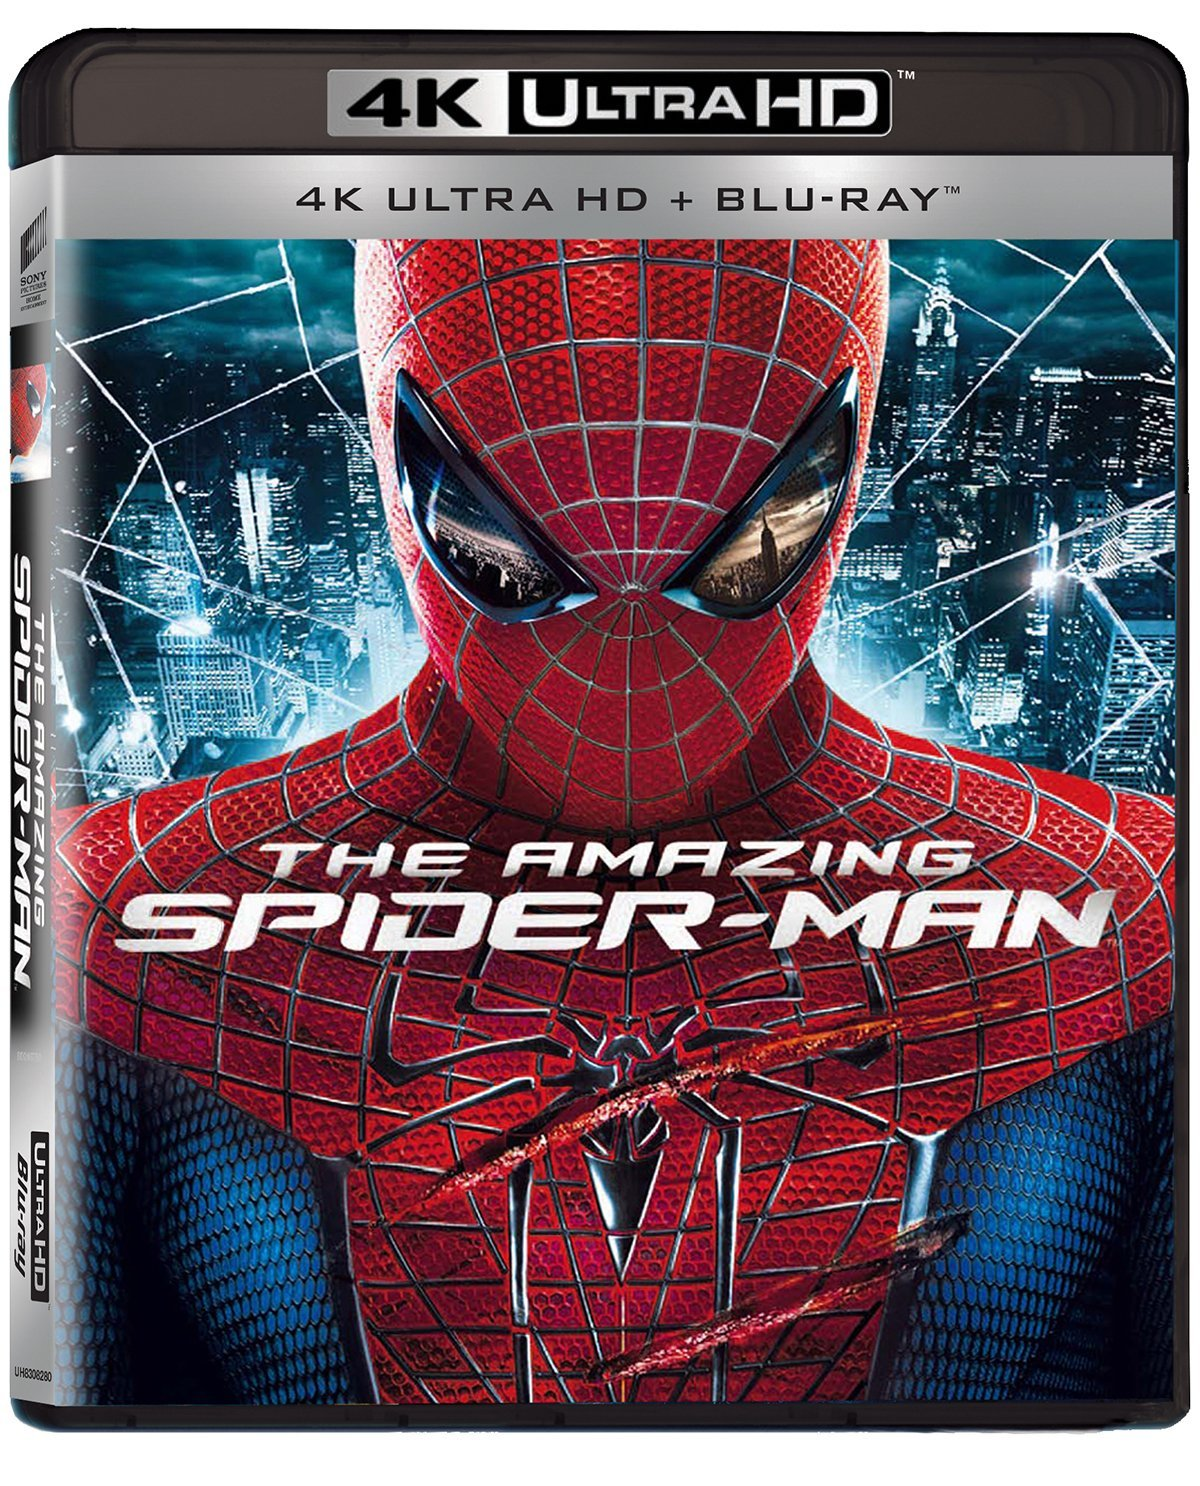 AMAZING SPIDER-MAN (THE) (4K ULTRA UHD+BLU-RAY)